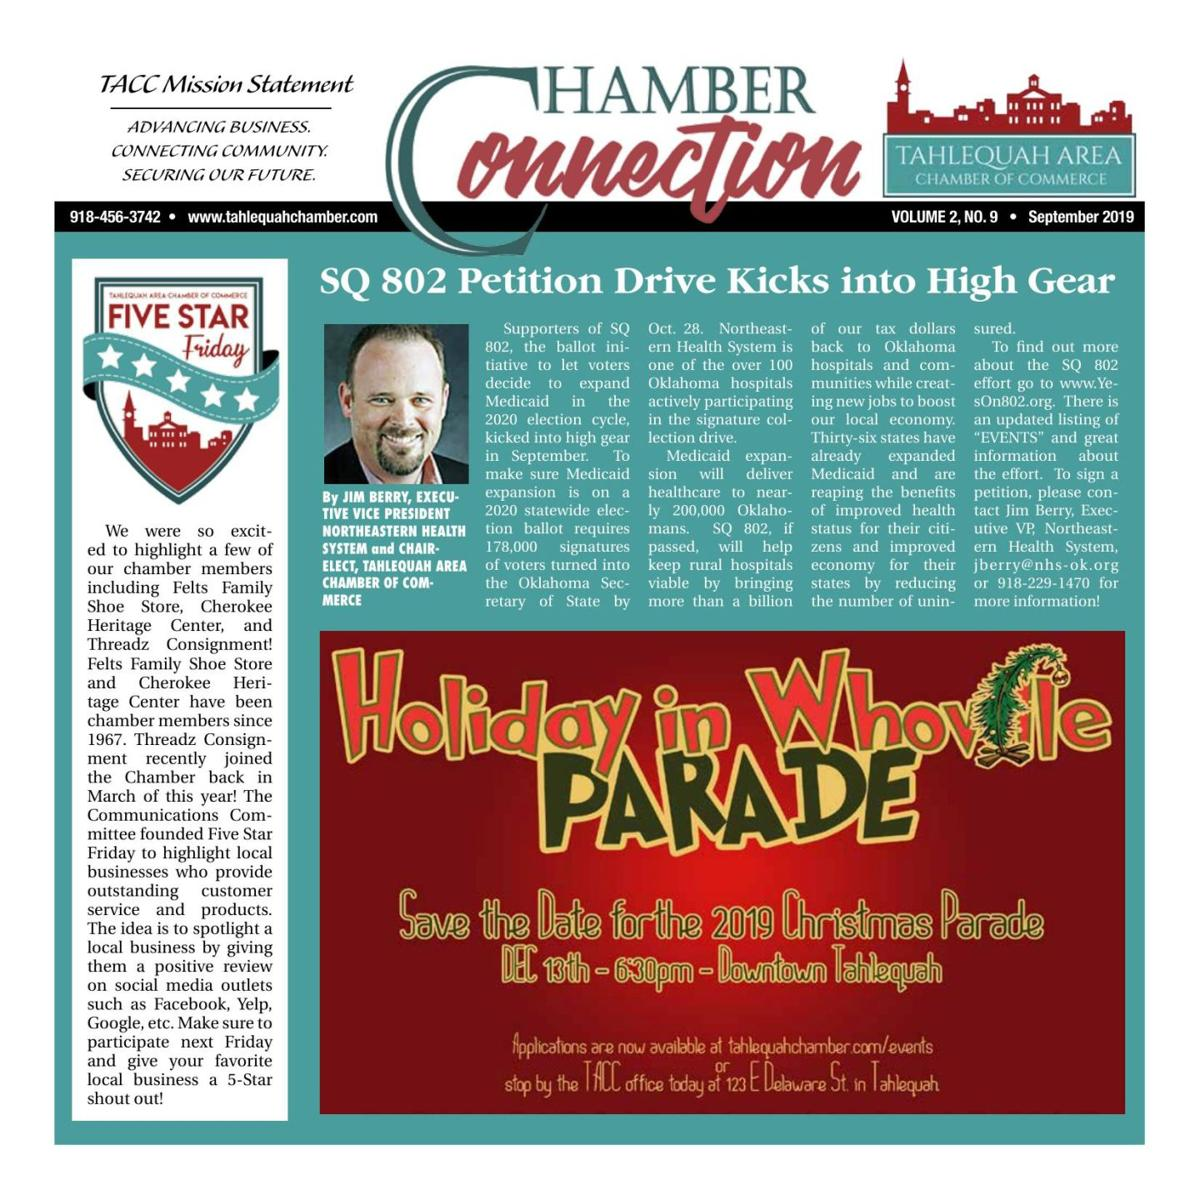 Chamber Connection - September 2019